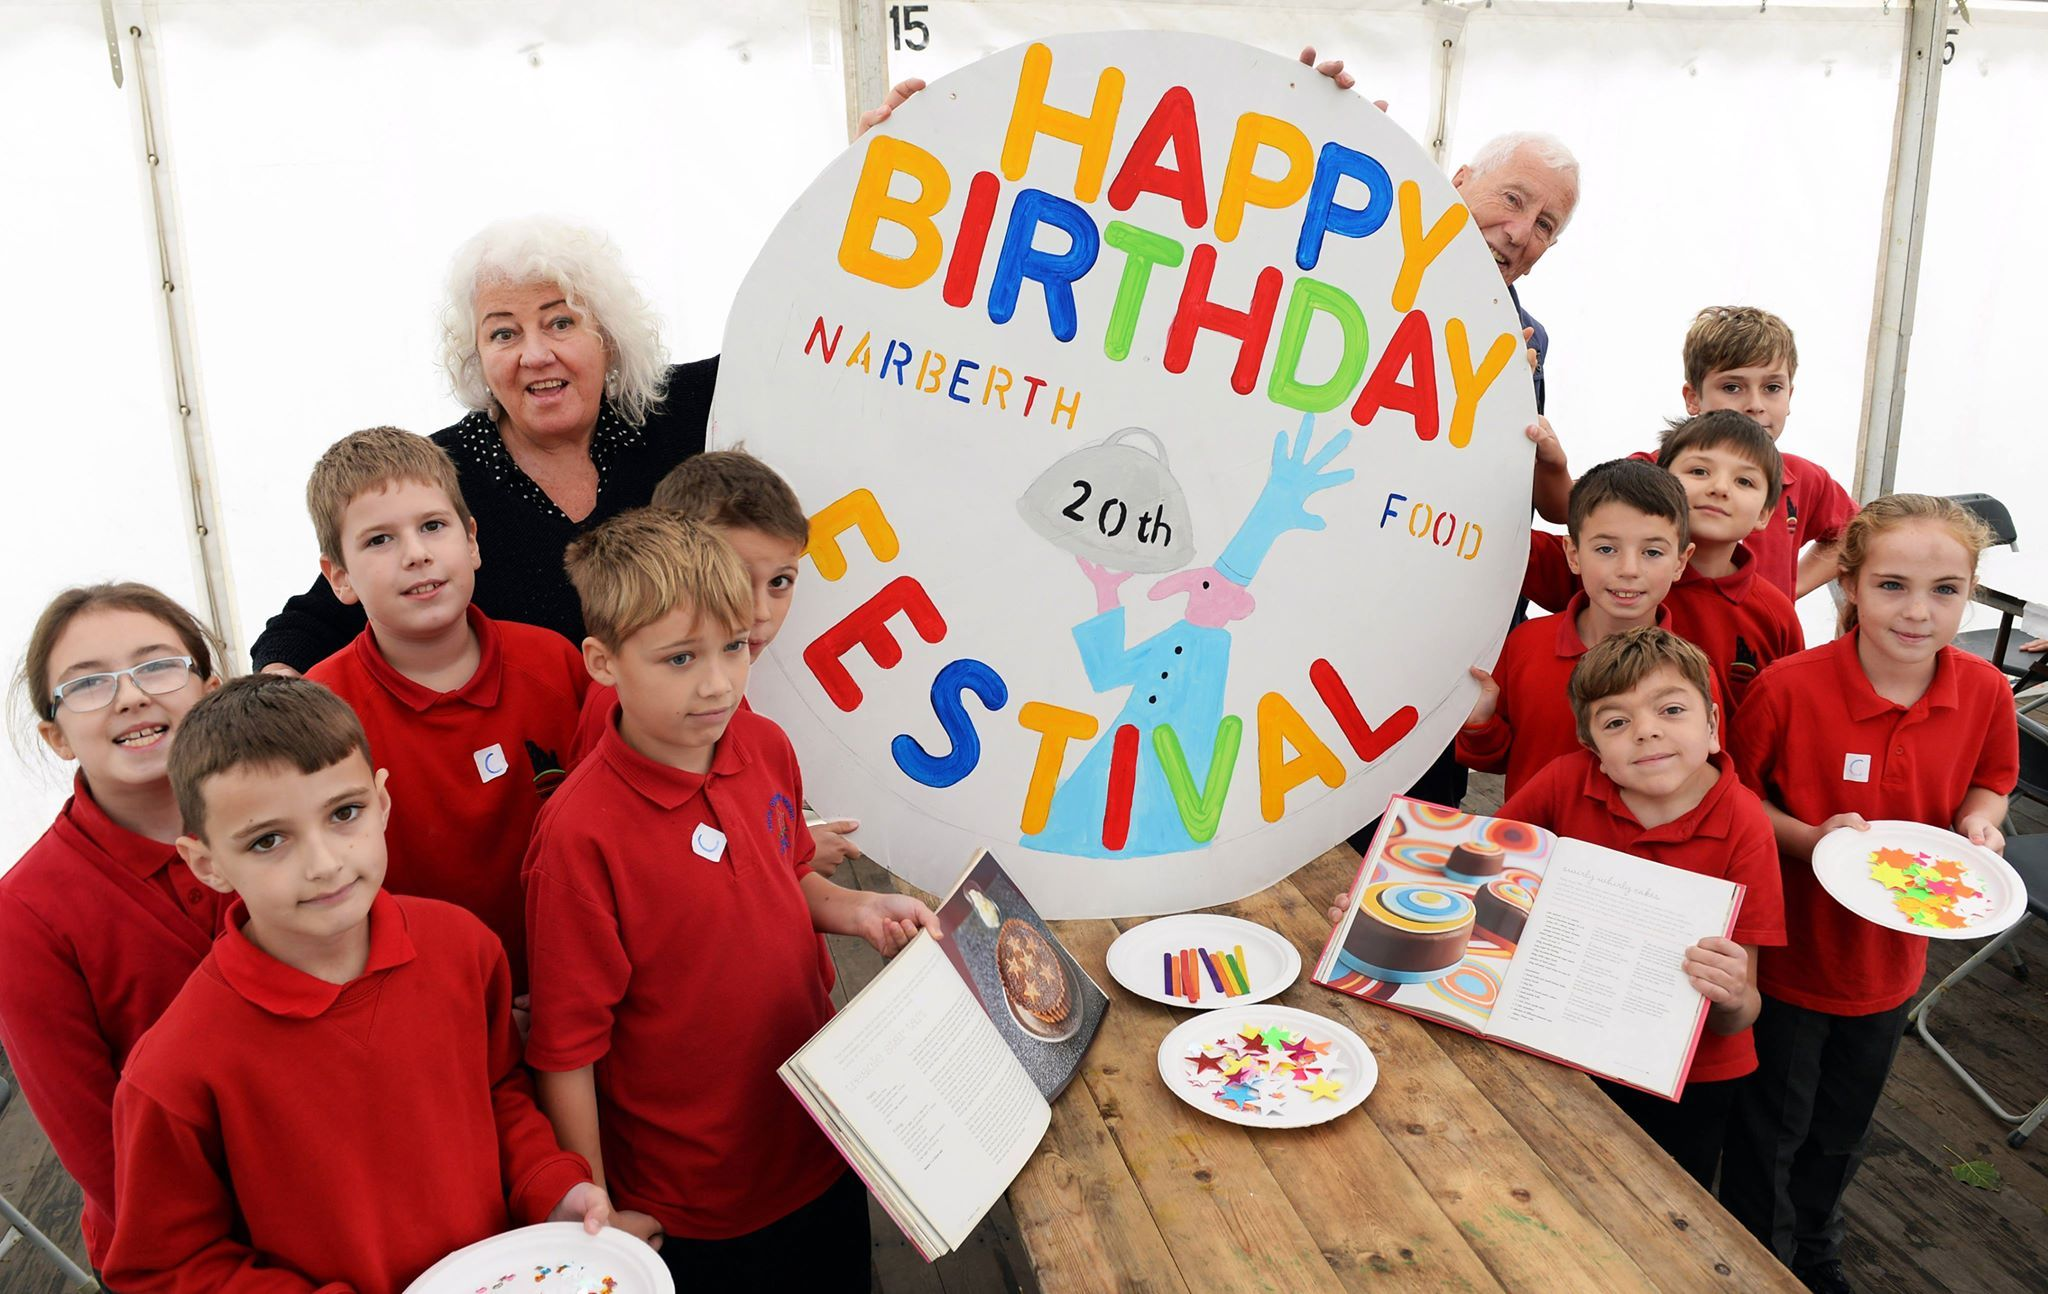 Birthday celebration time at Narberth Food Festival's Education Day today (Friday), ahead of the weekend's main event. PICTURE: Gareth Davies Photography